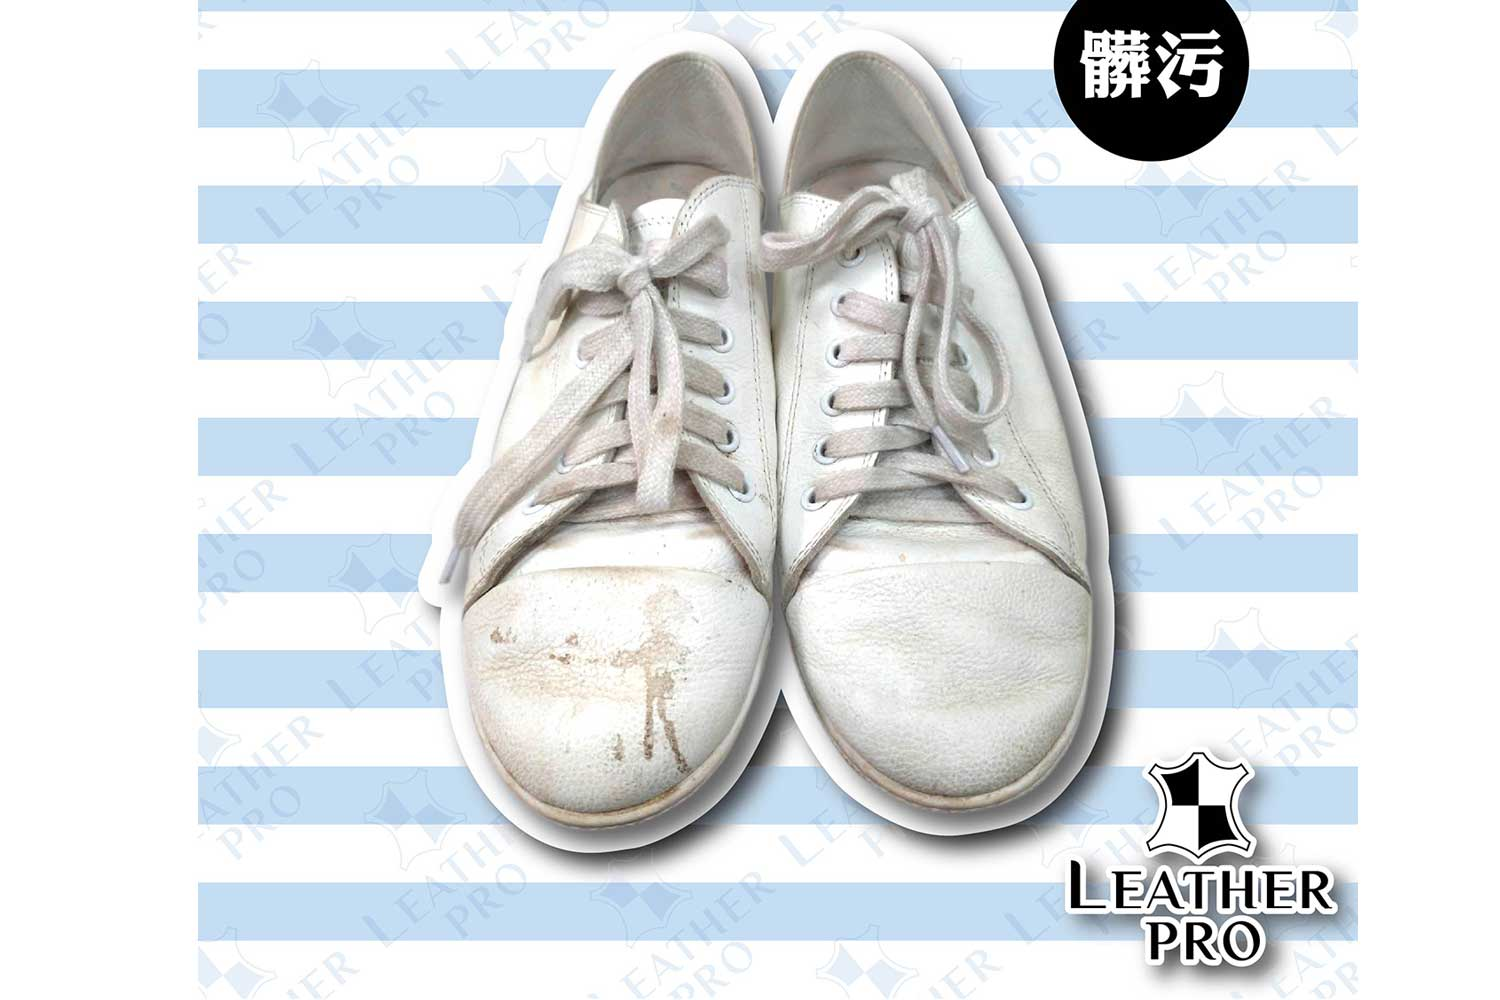 https://leather-pro.com/wp-content/uploads/2019/03/white-leather-shoes_before_1500.jpg